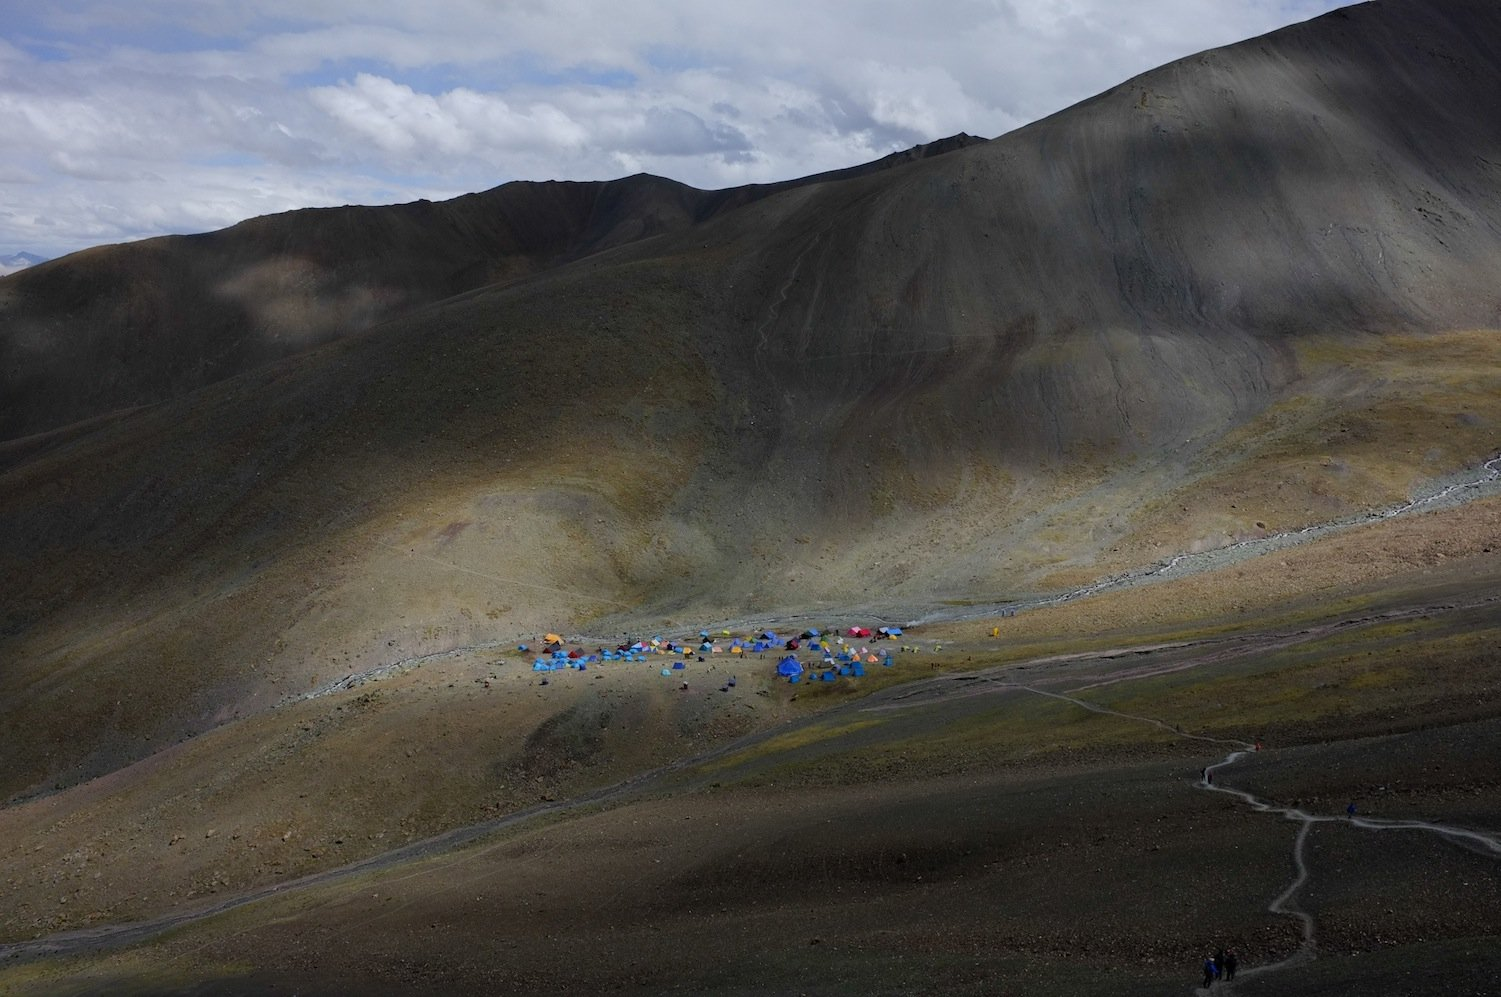 airFreshing_2016_Ladhak_Stok_Kangri_Laudi_Expedition_Basecamp